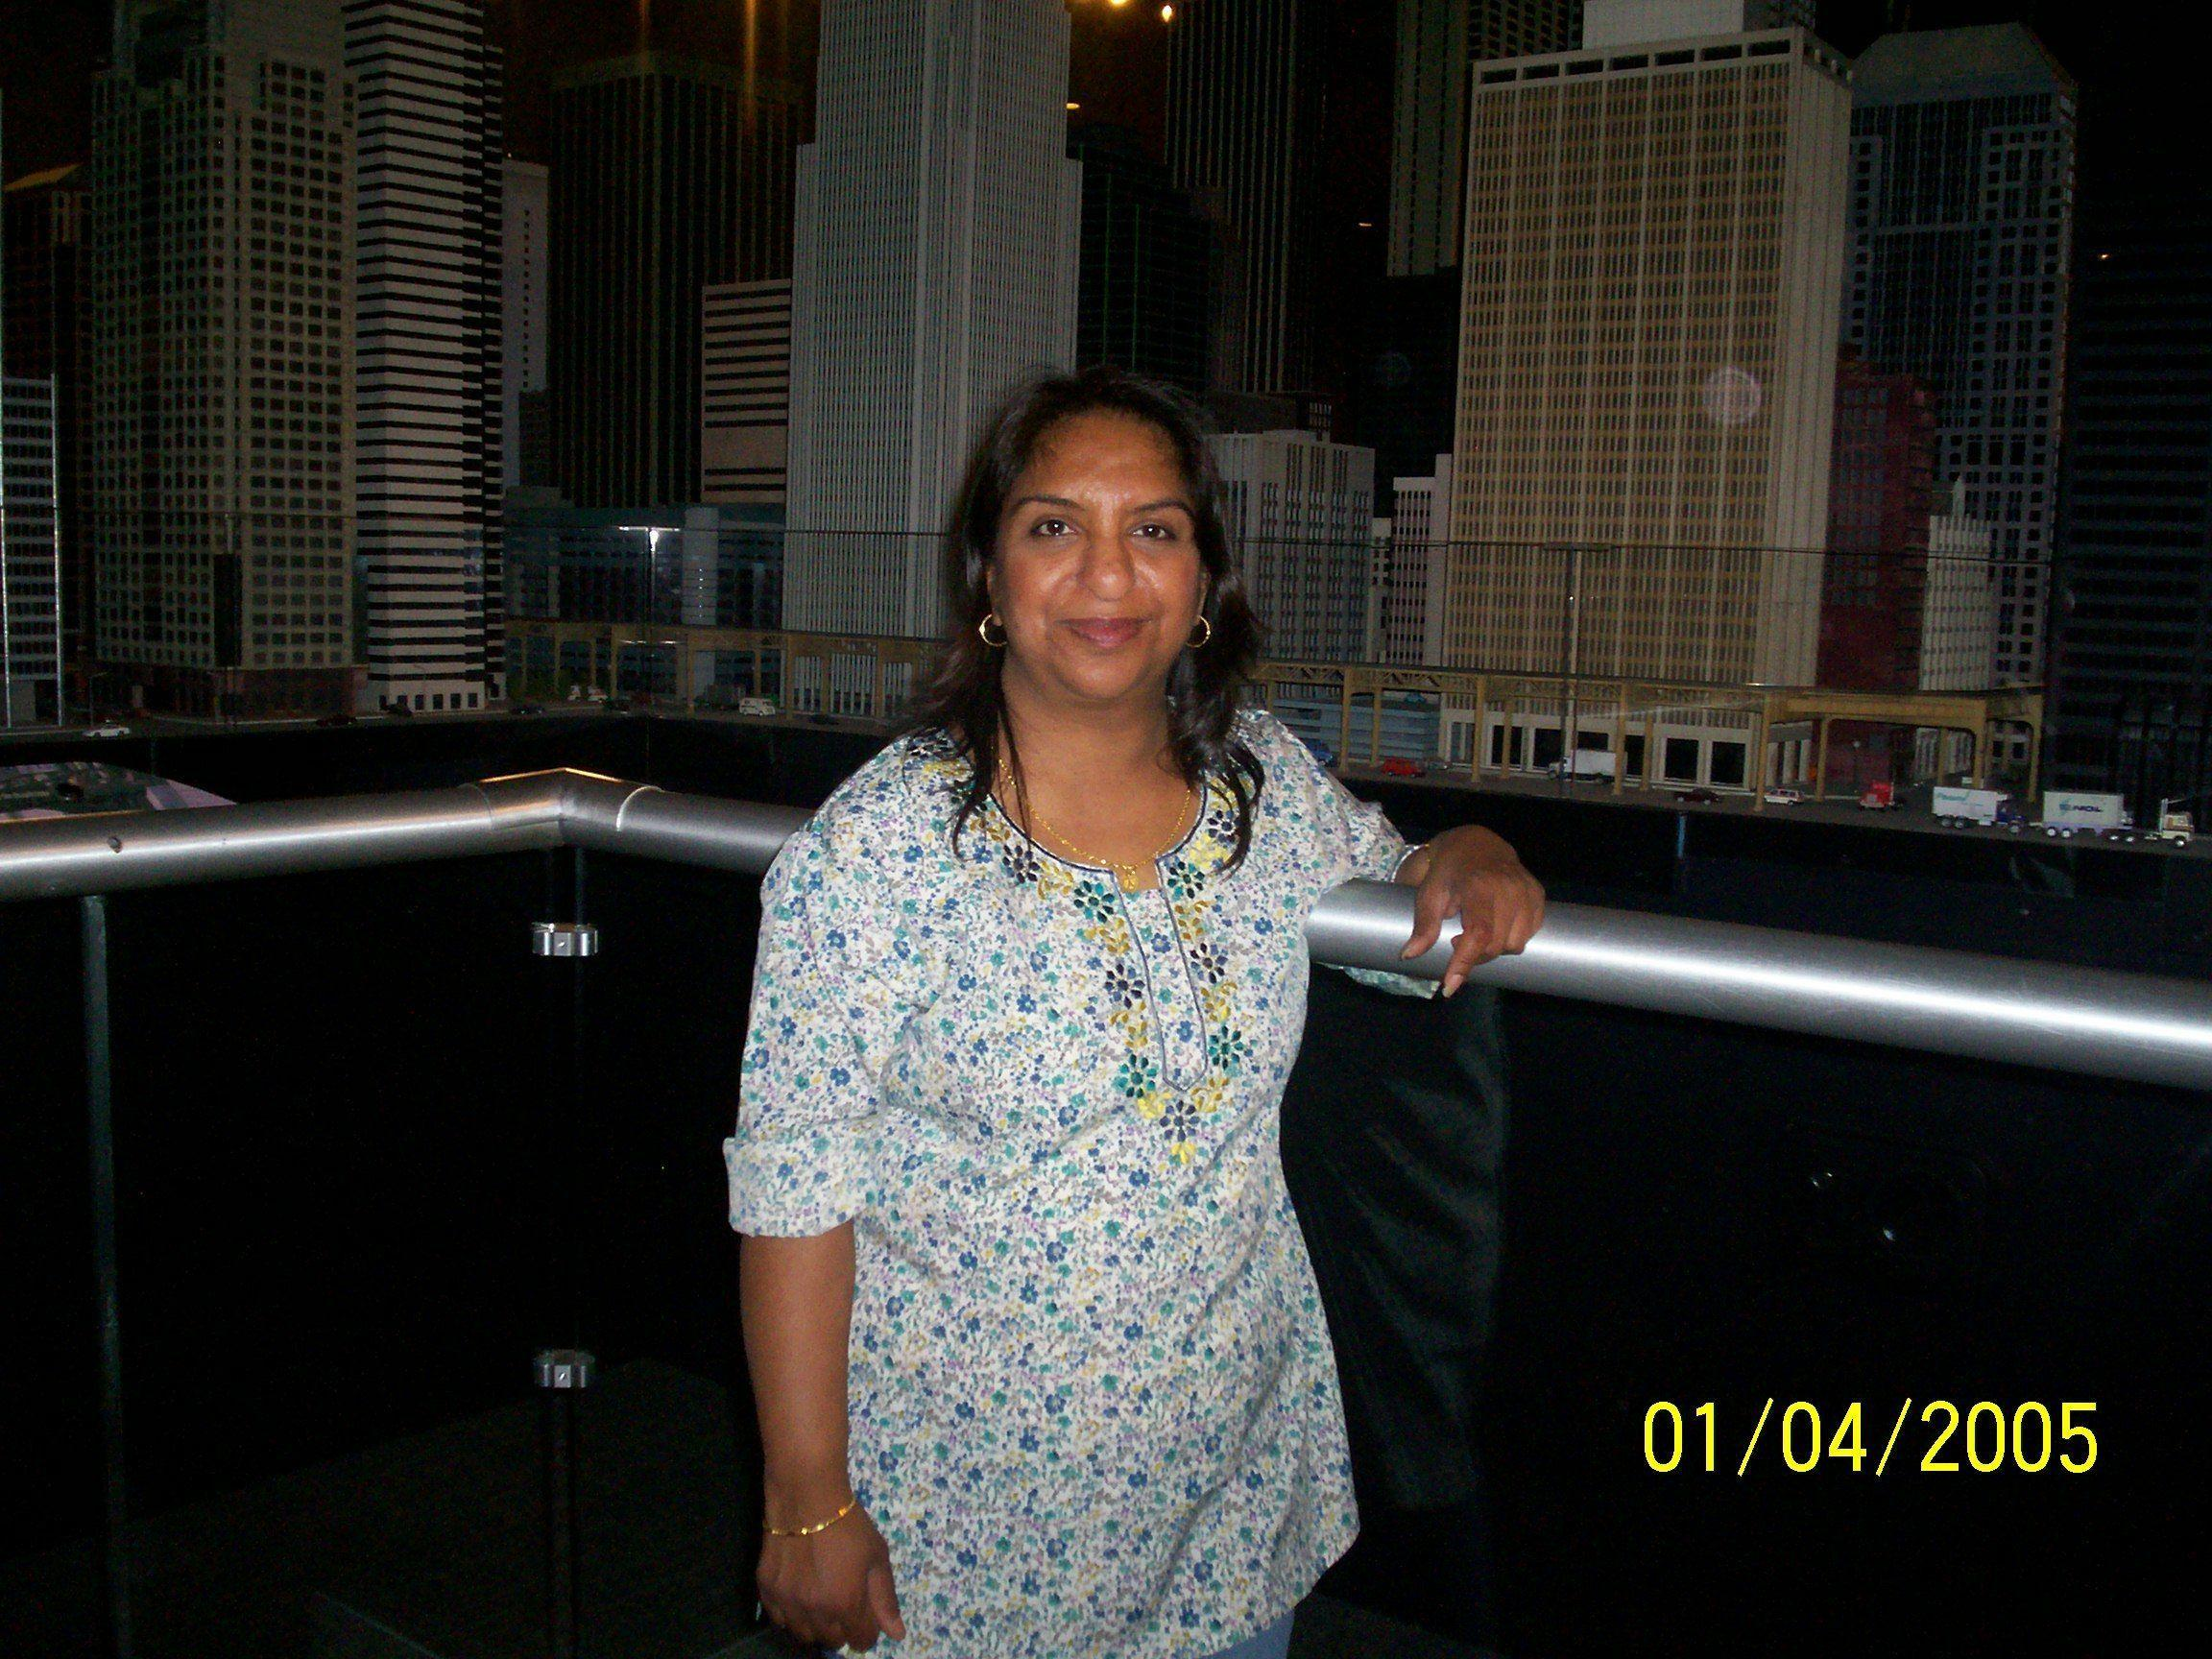 roswell hindu singles Dating in roswell is not exactly a walk in the park yes , it can be challenging for roswell singles looking for meaningful relationships  that is where we work our magic.